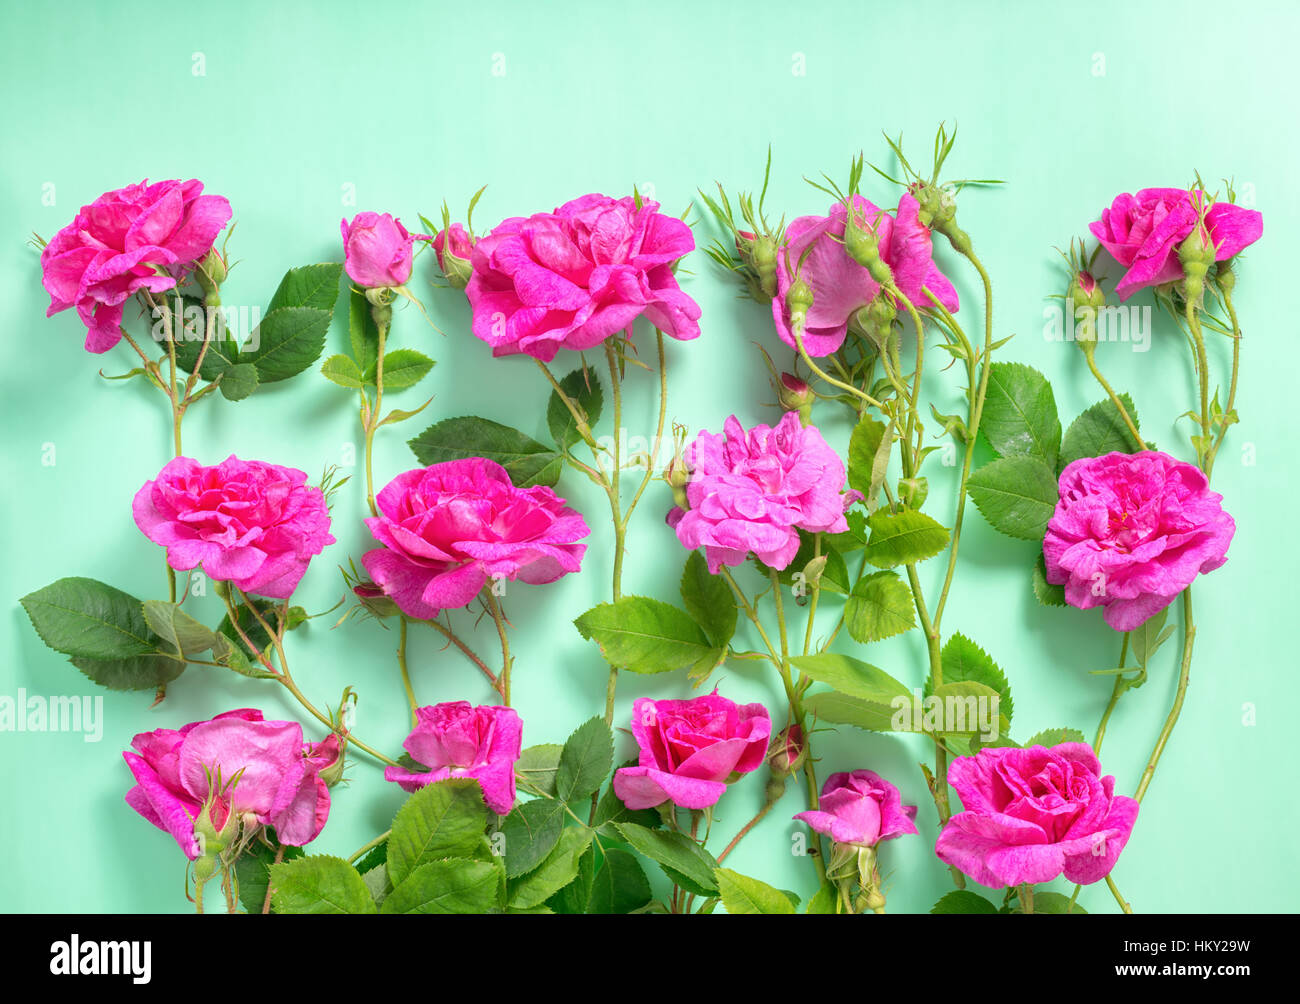 Beautiful Romantic Pink Rose Flowers With Buds And Leaves On Green